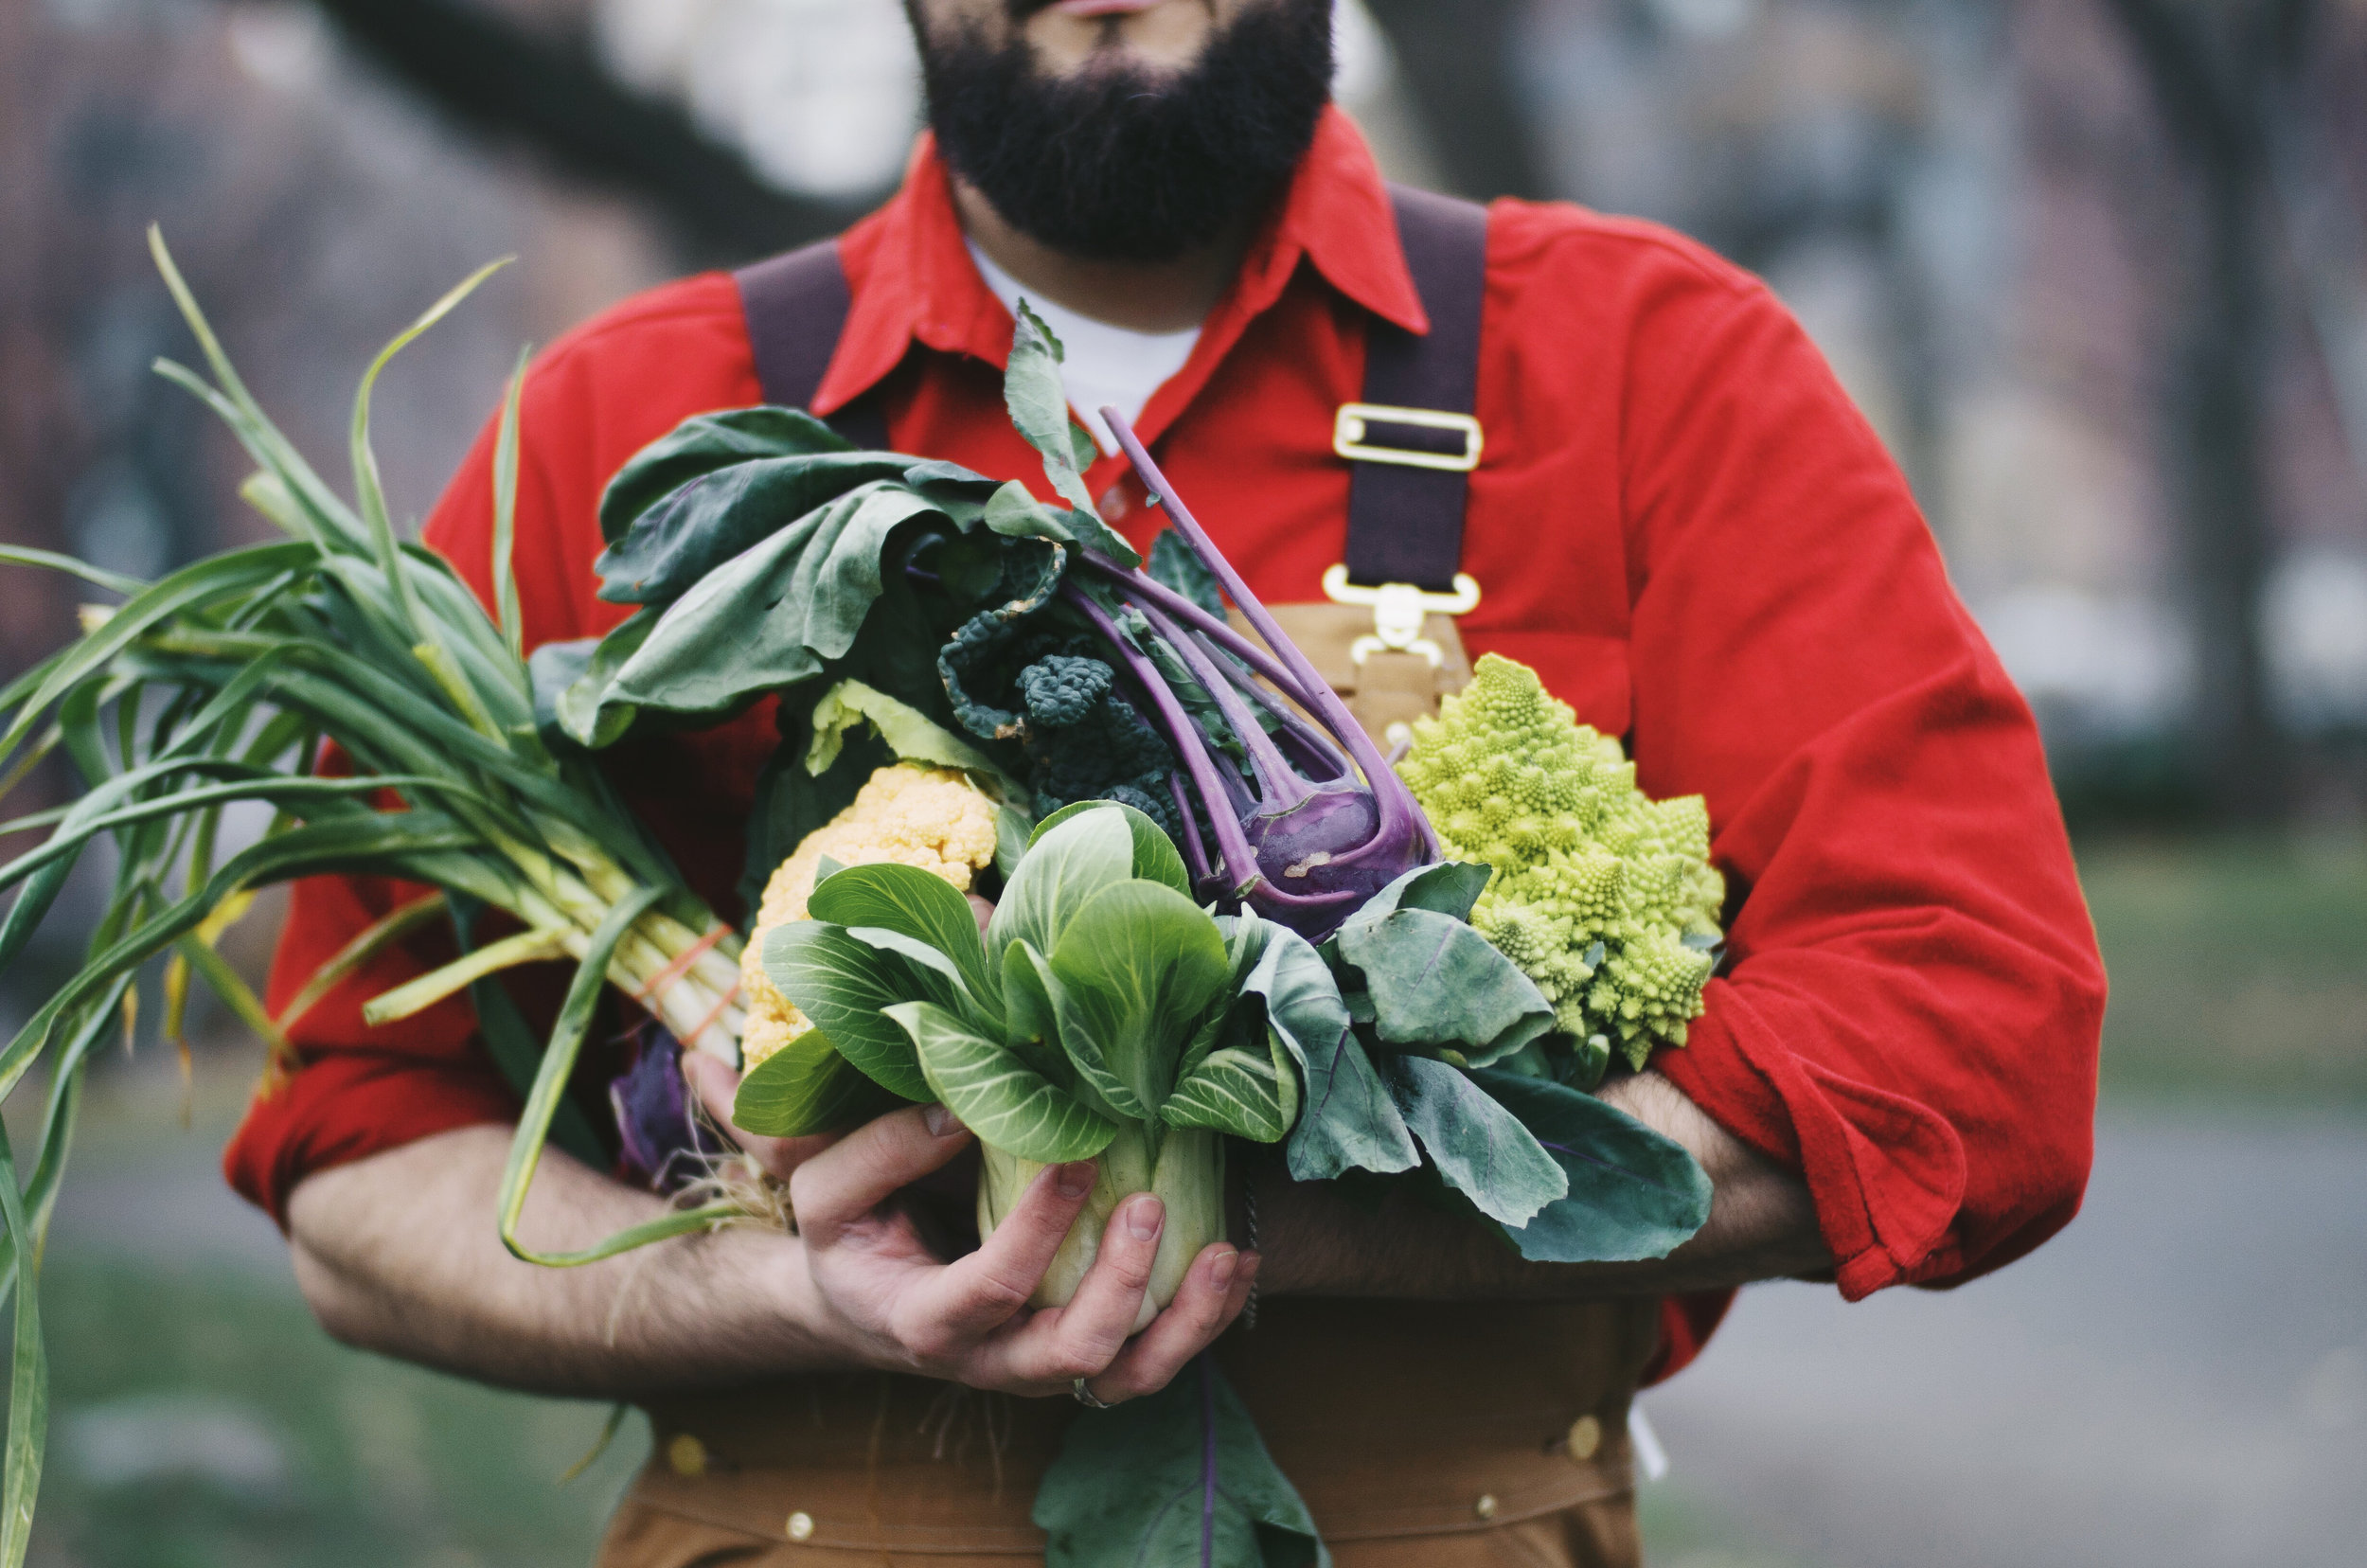 A winter's produce haul from the Union Square Farmers Market. Photo taken by @tutes.